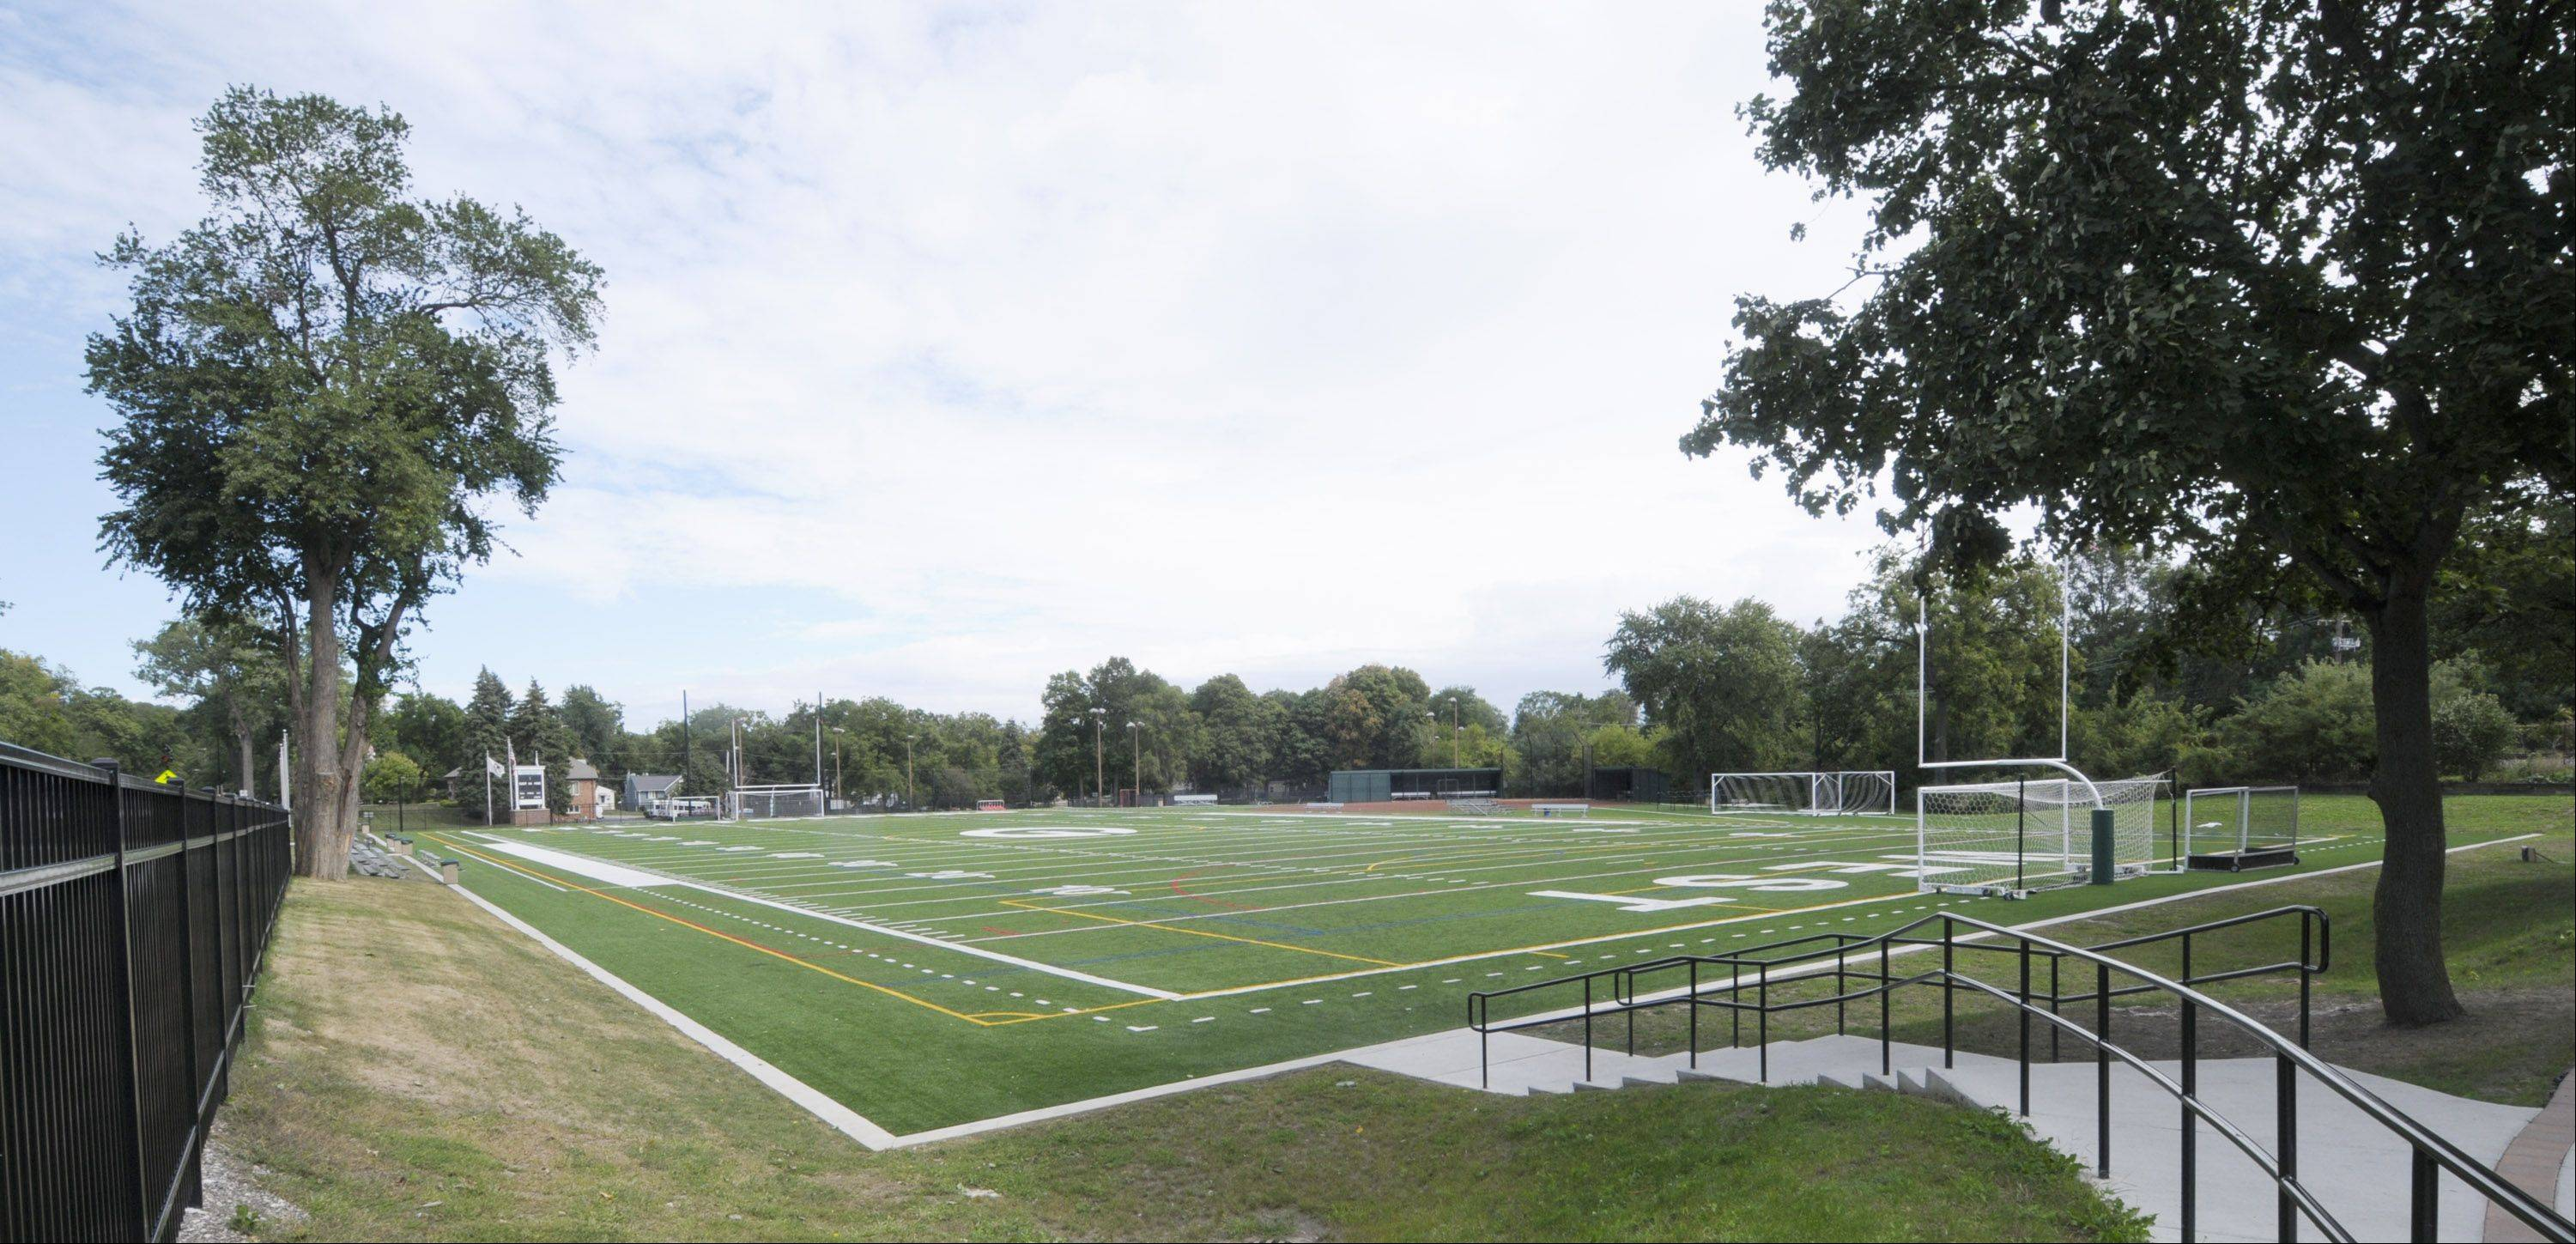 Fundraising continues for Memorial Field lights